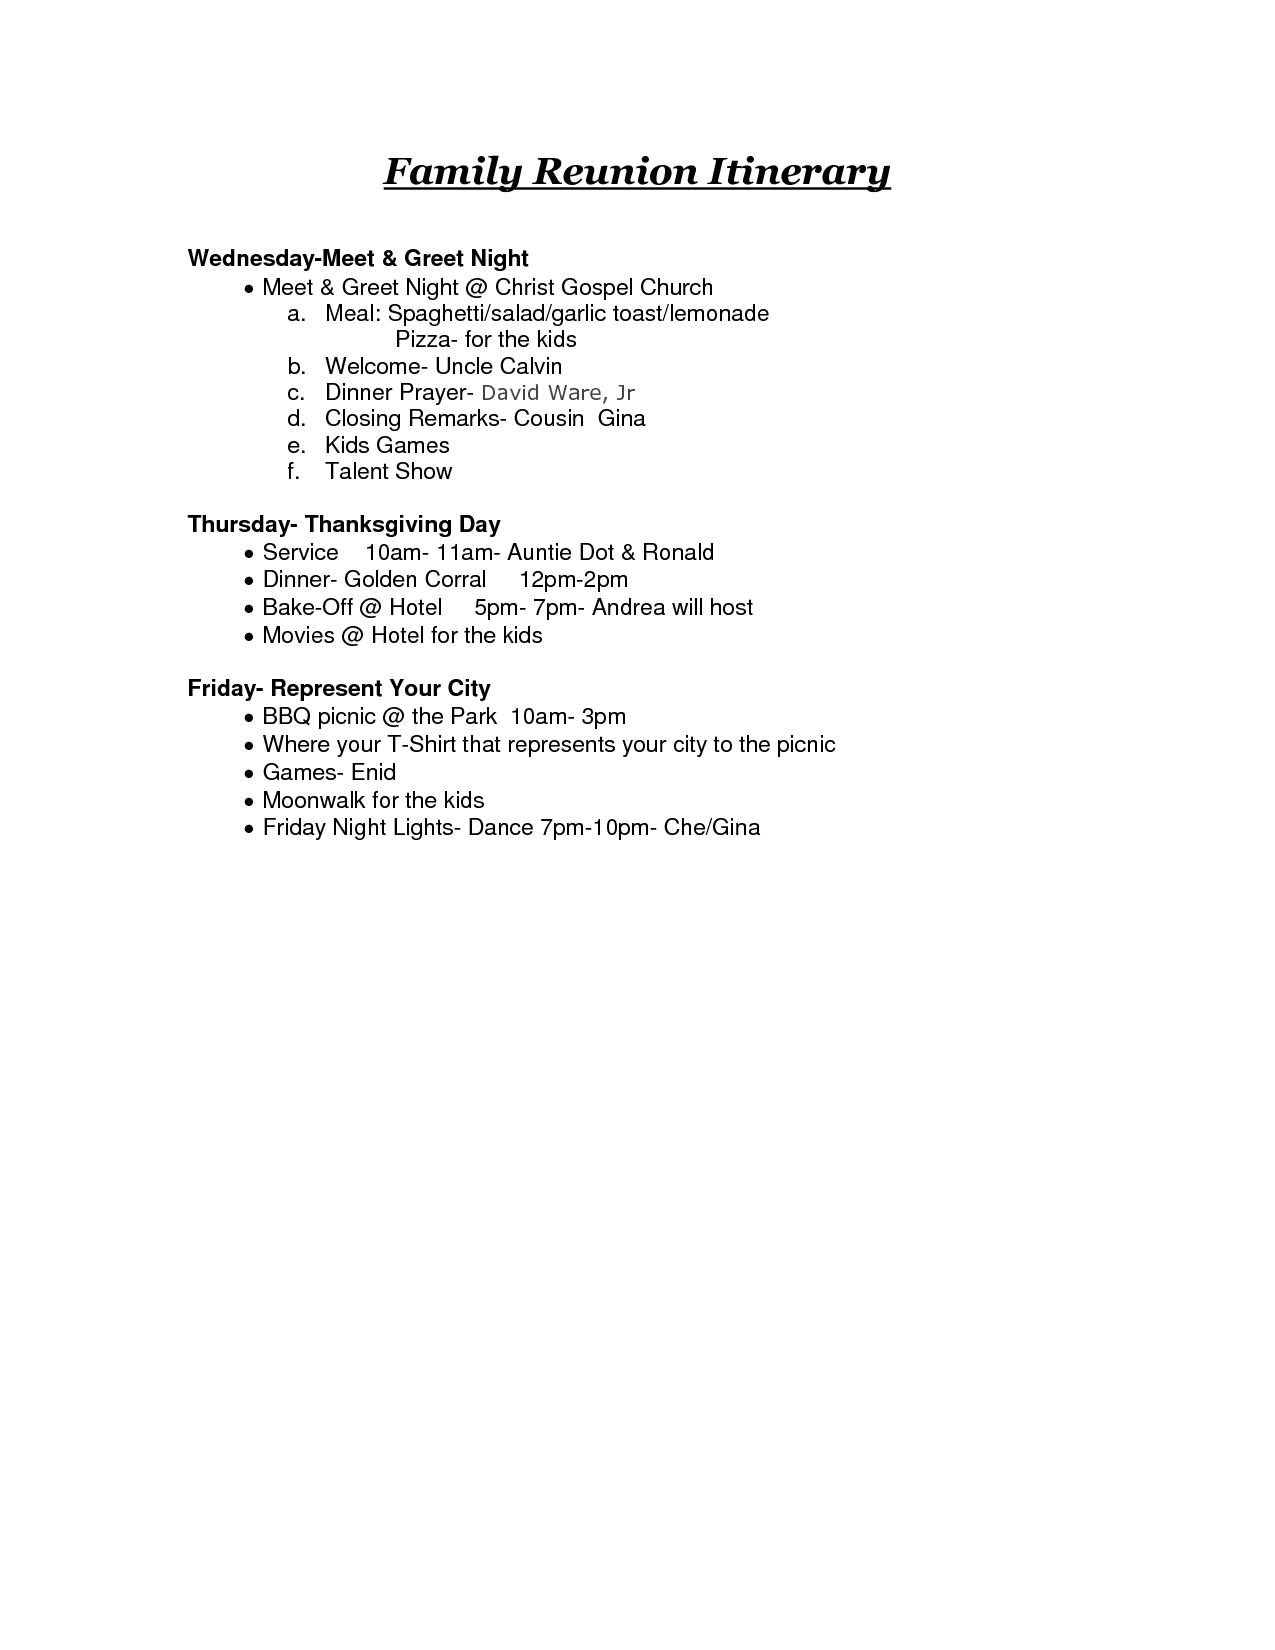 Reunion Activities Family Reunion Itinerary Doc Family Reunion